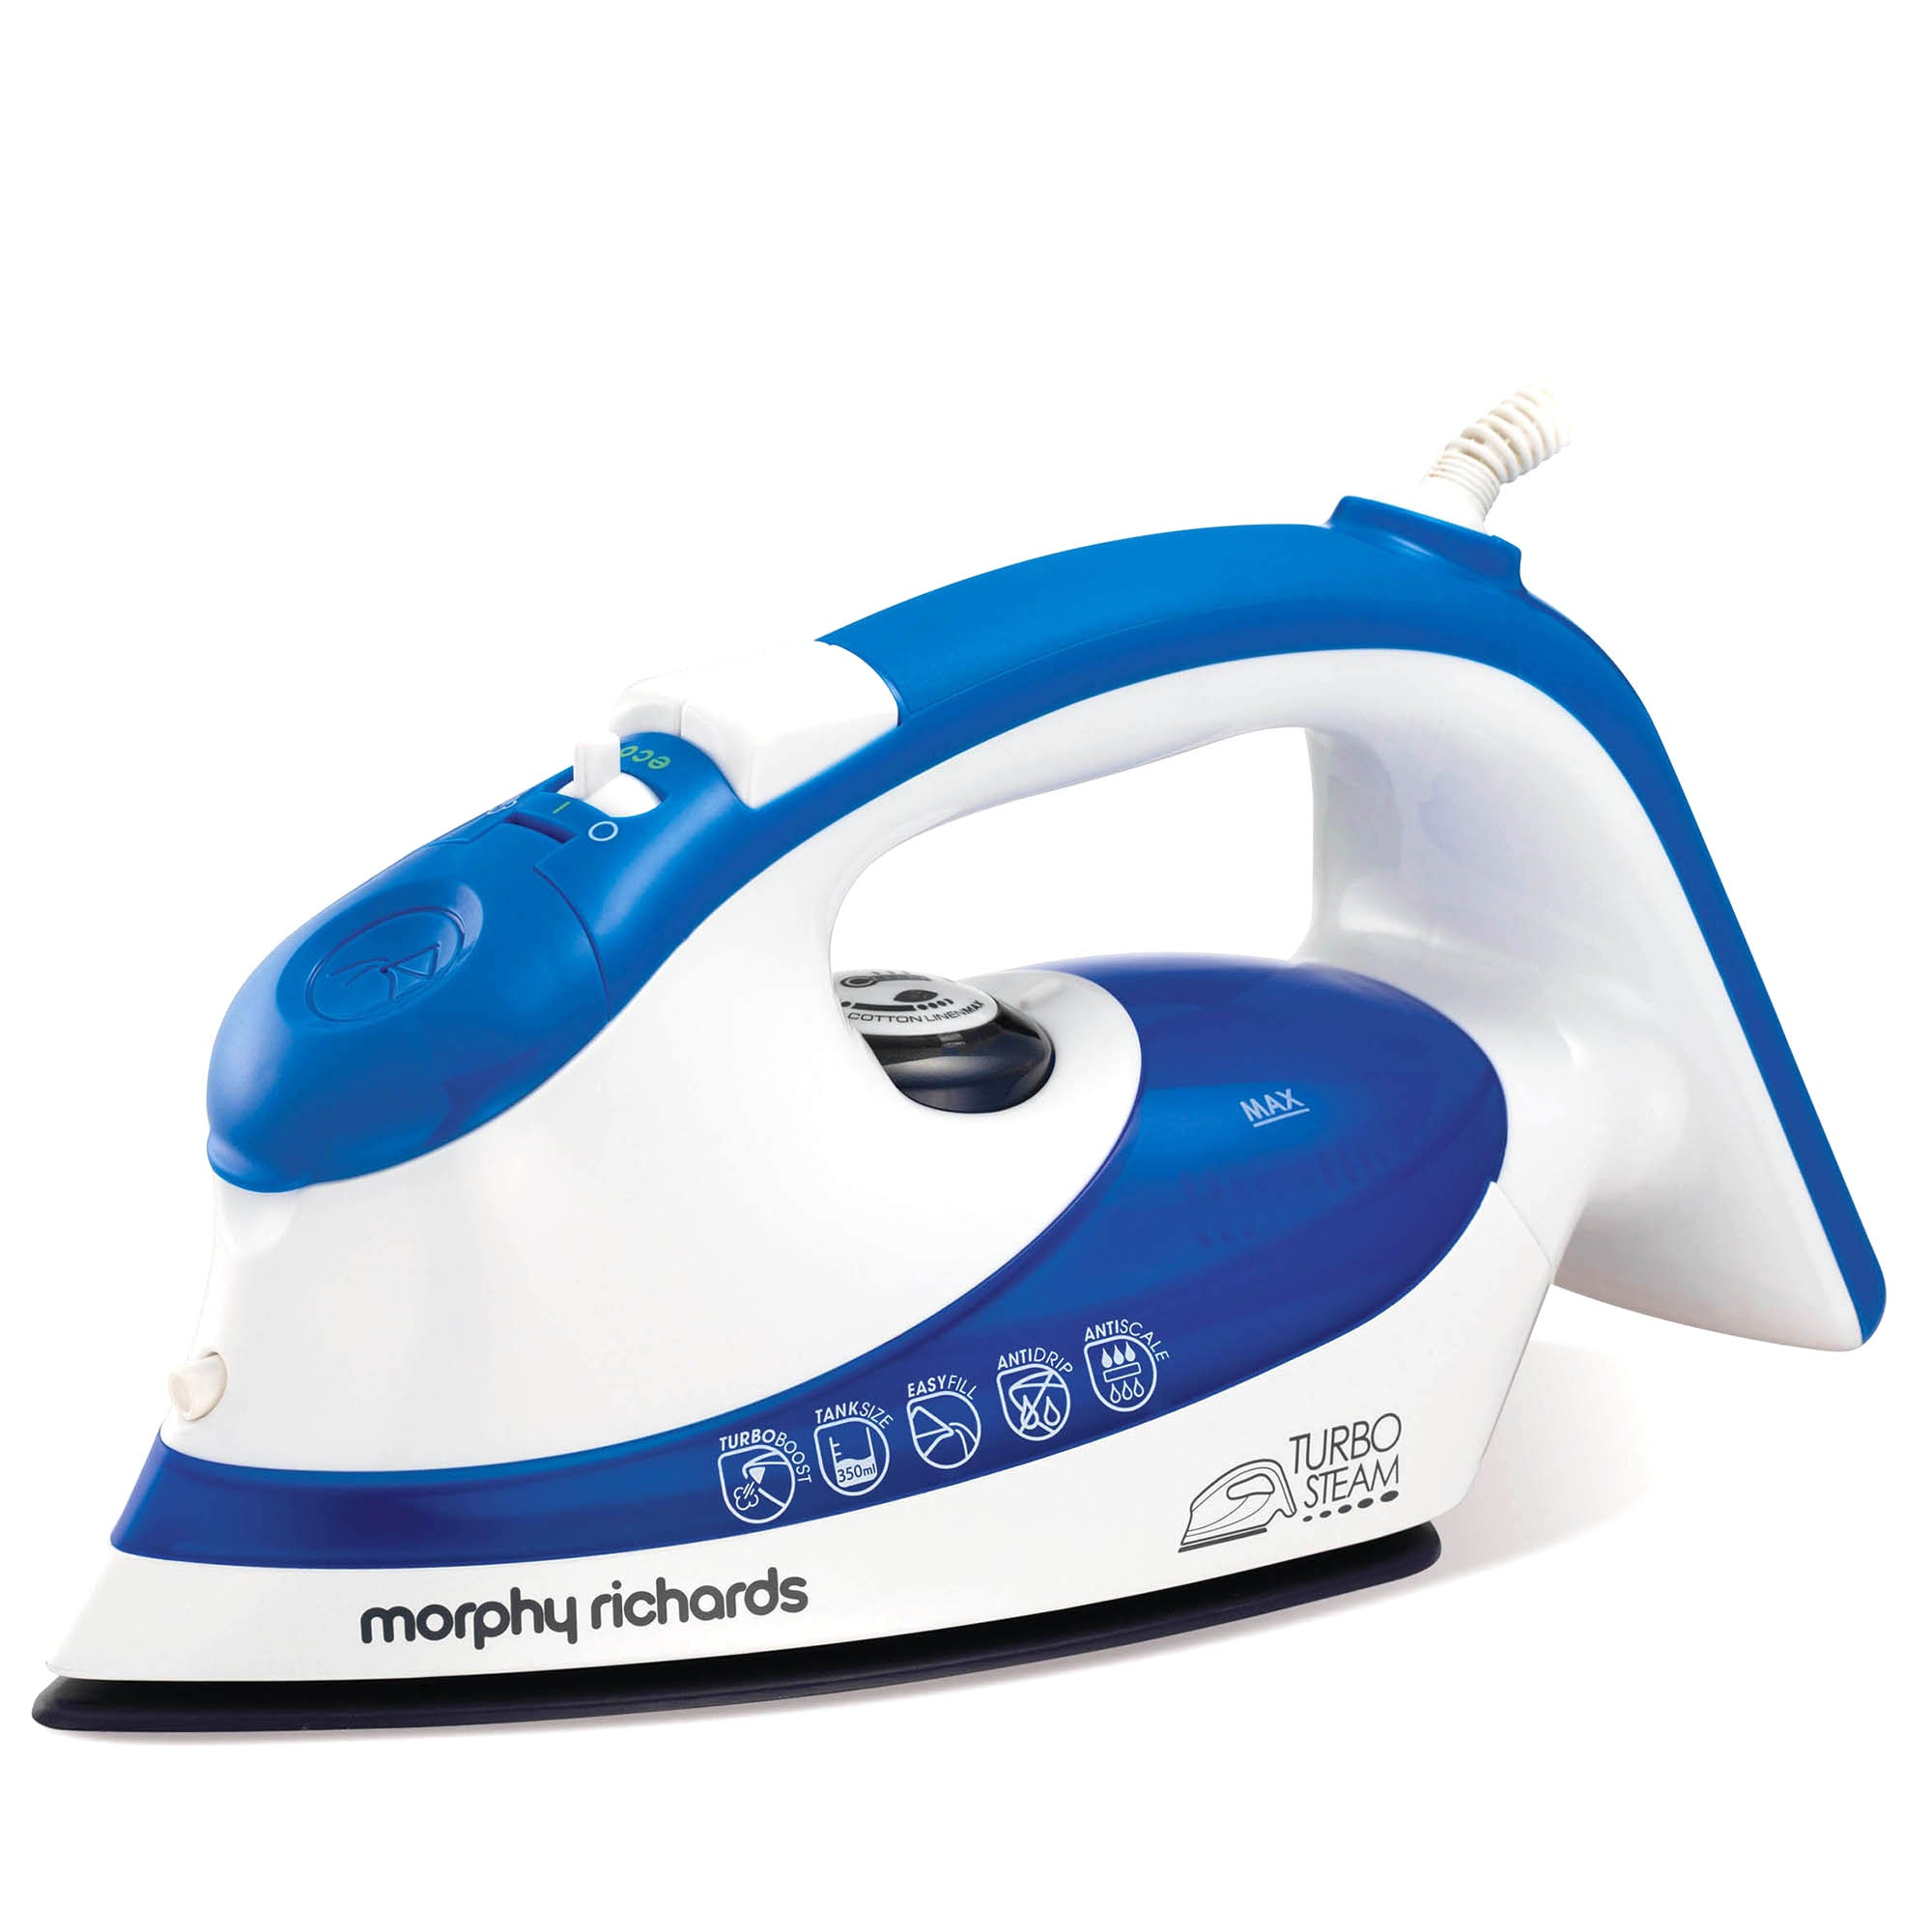 Morphy Richards 300601 Blue Ionic Turbosteam Iron 2000w